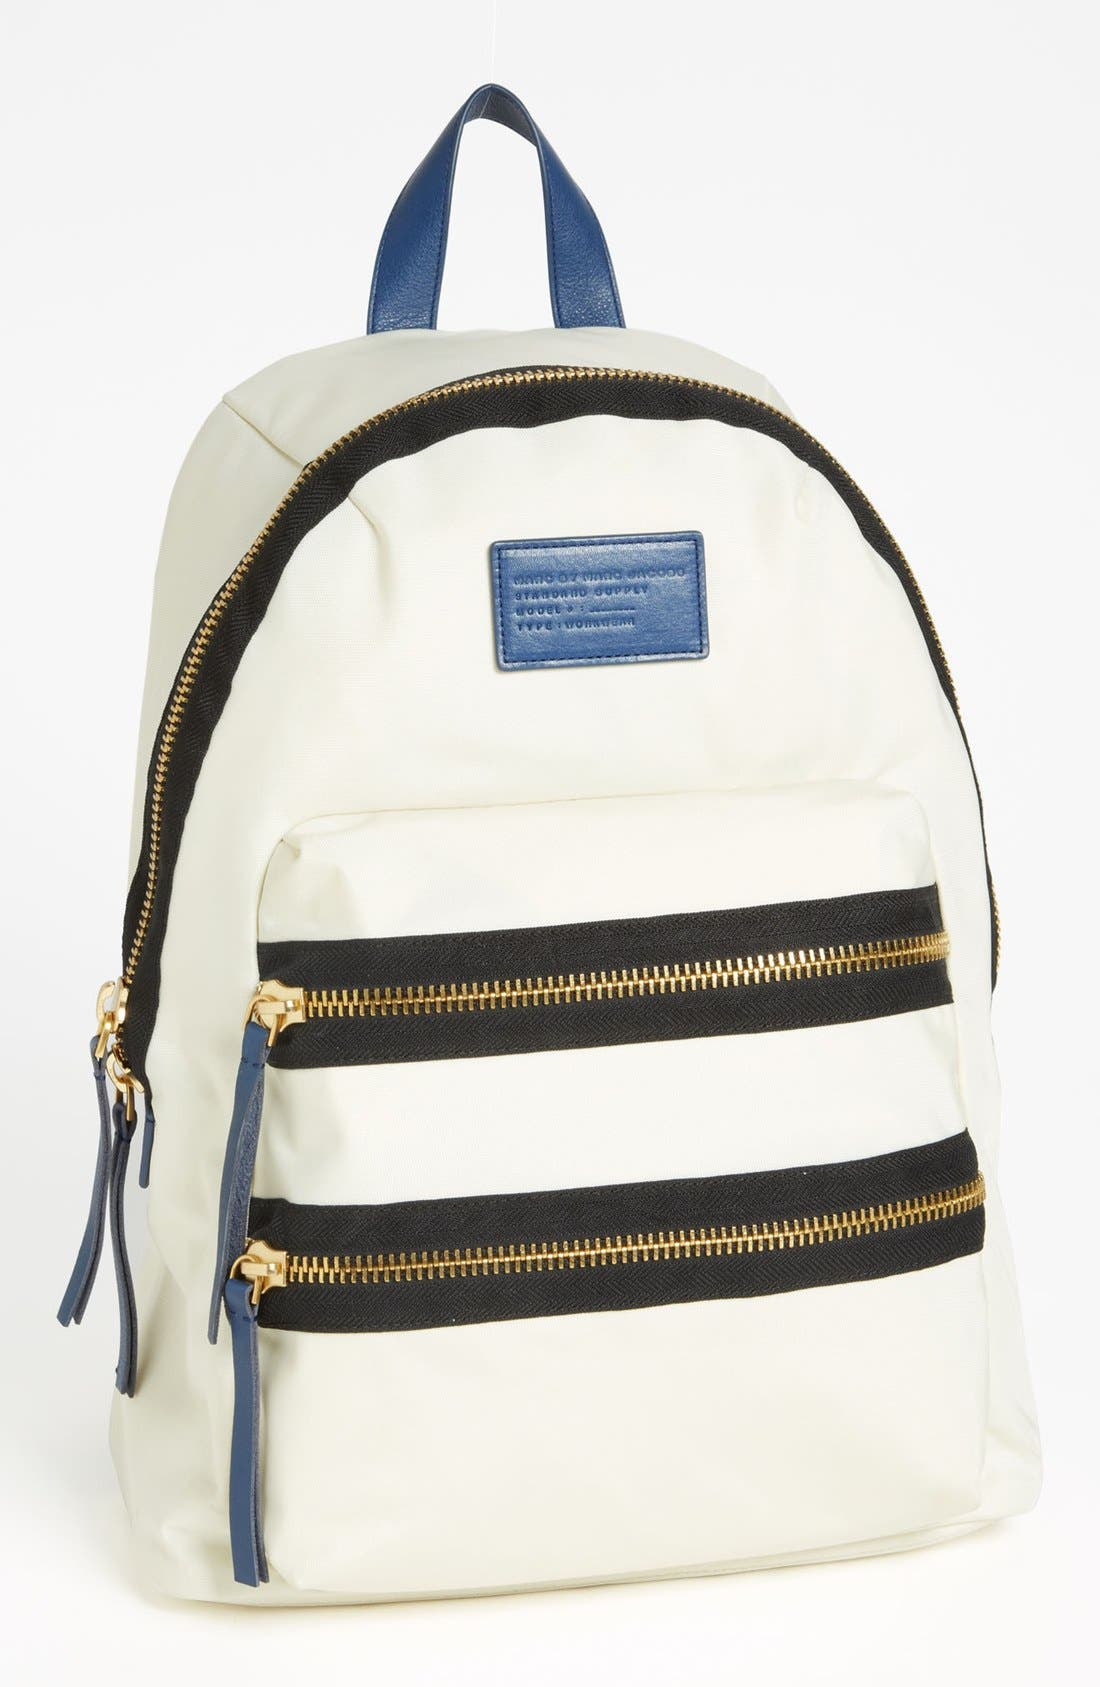 Alternate Image 1 Selected - MARC BY MARC JACOBS 'Domo Arigato Packrat' Backpack